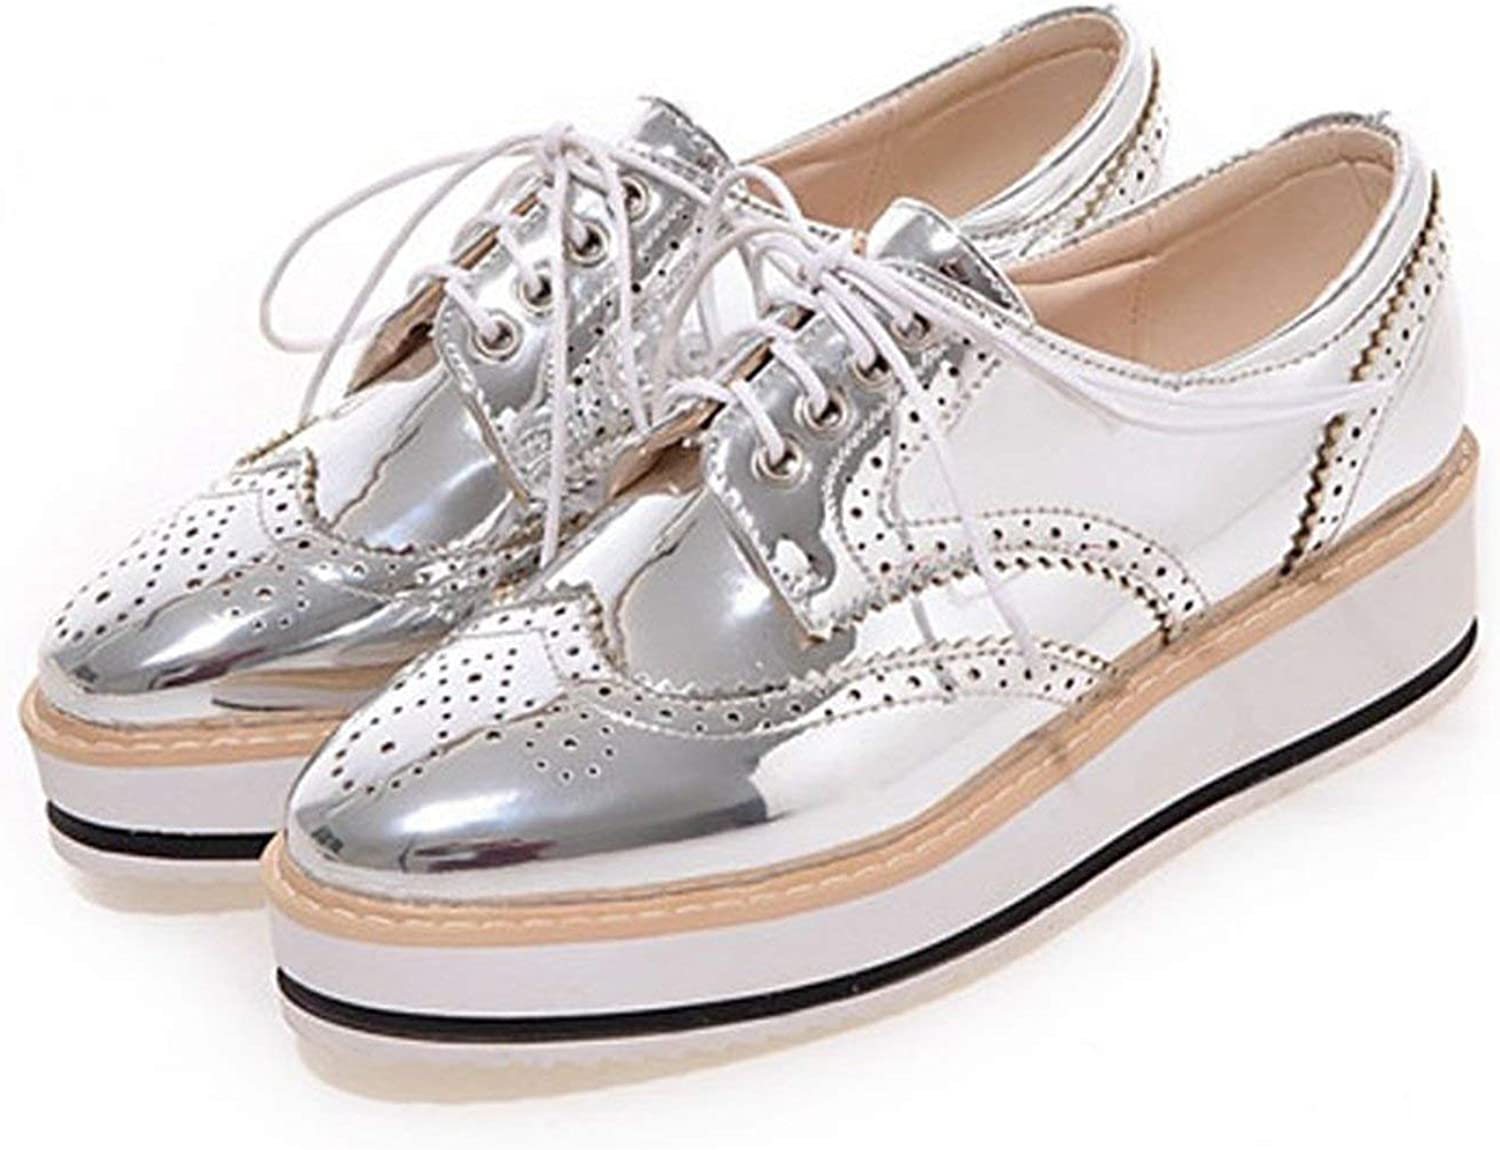 HANBINGPO Vintage Women's Casual Oxfords shoes Carved Bullock shoes Woman Bright Patent Leather Flat Platform Brogue shoes